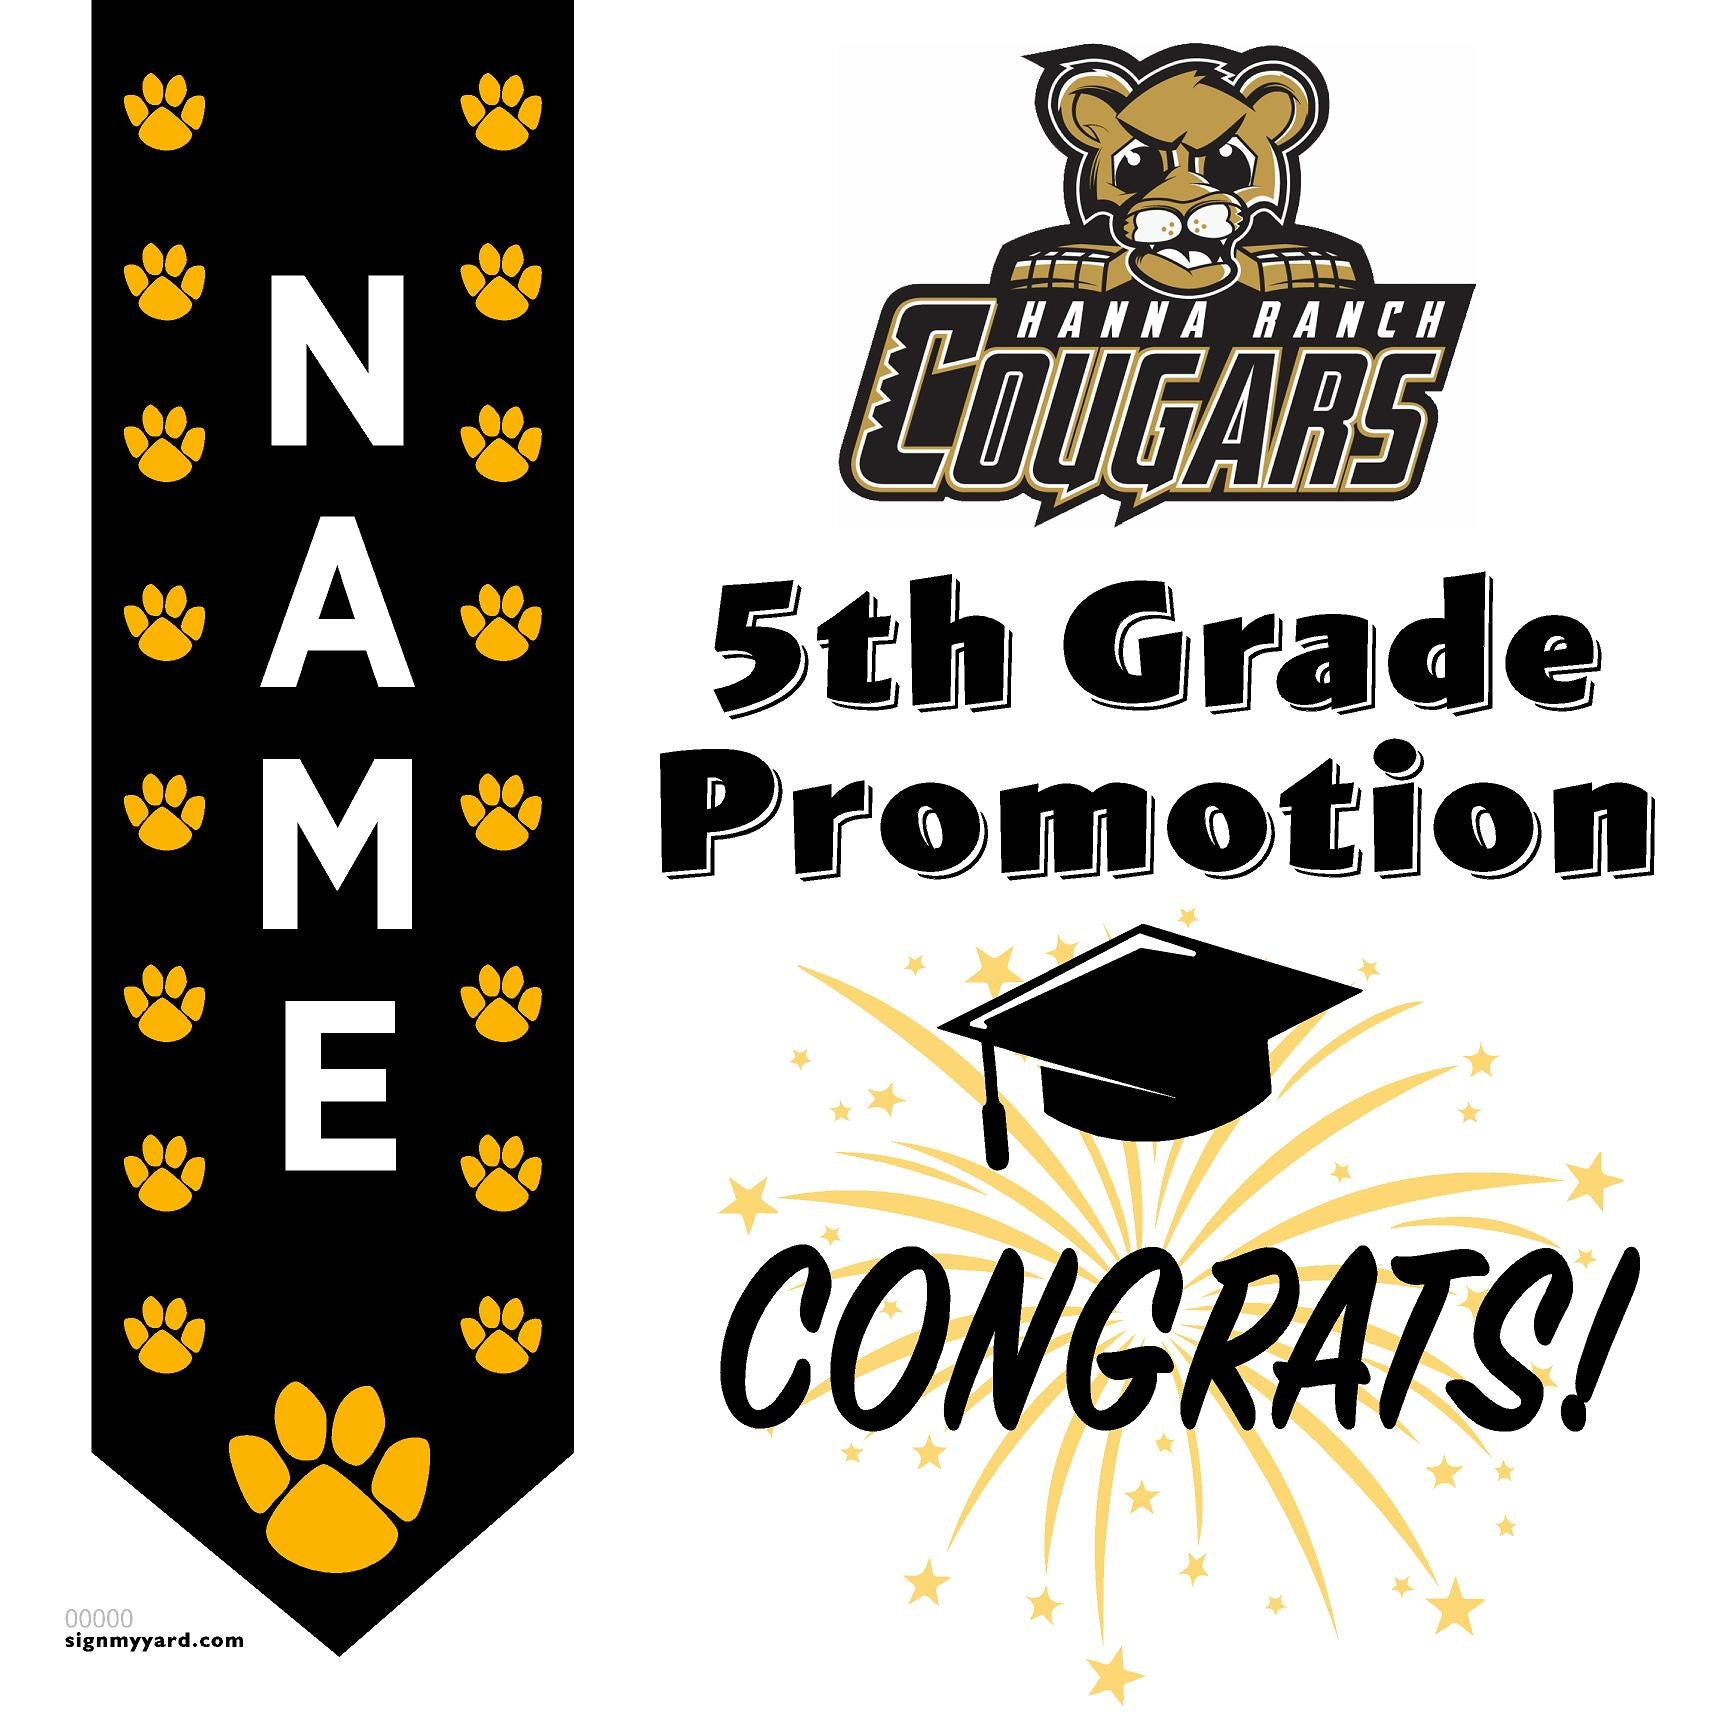 Hanna Ranch Elementary School 5th Grade Promotion 24x24 #shineon2027 Yard Sign (Option B)